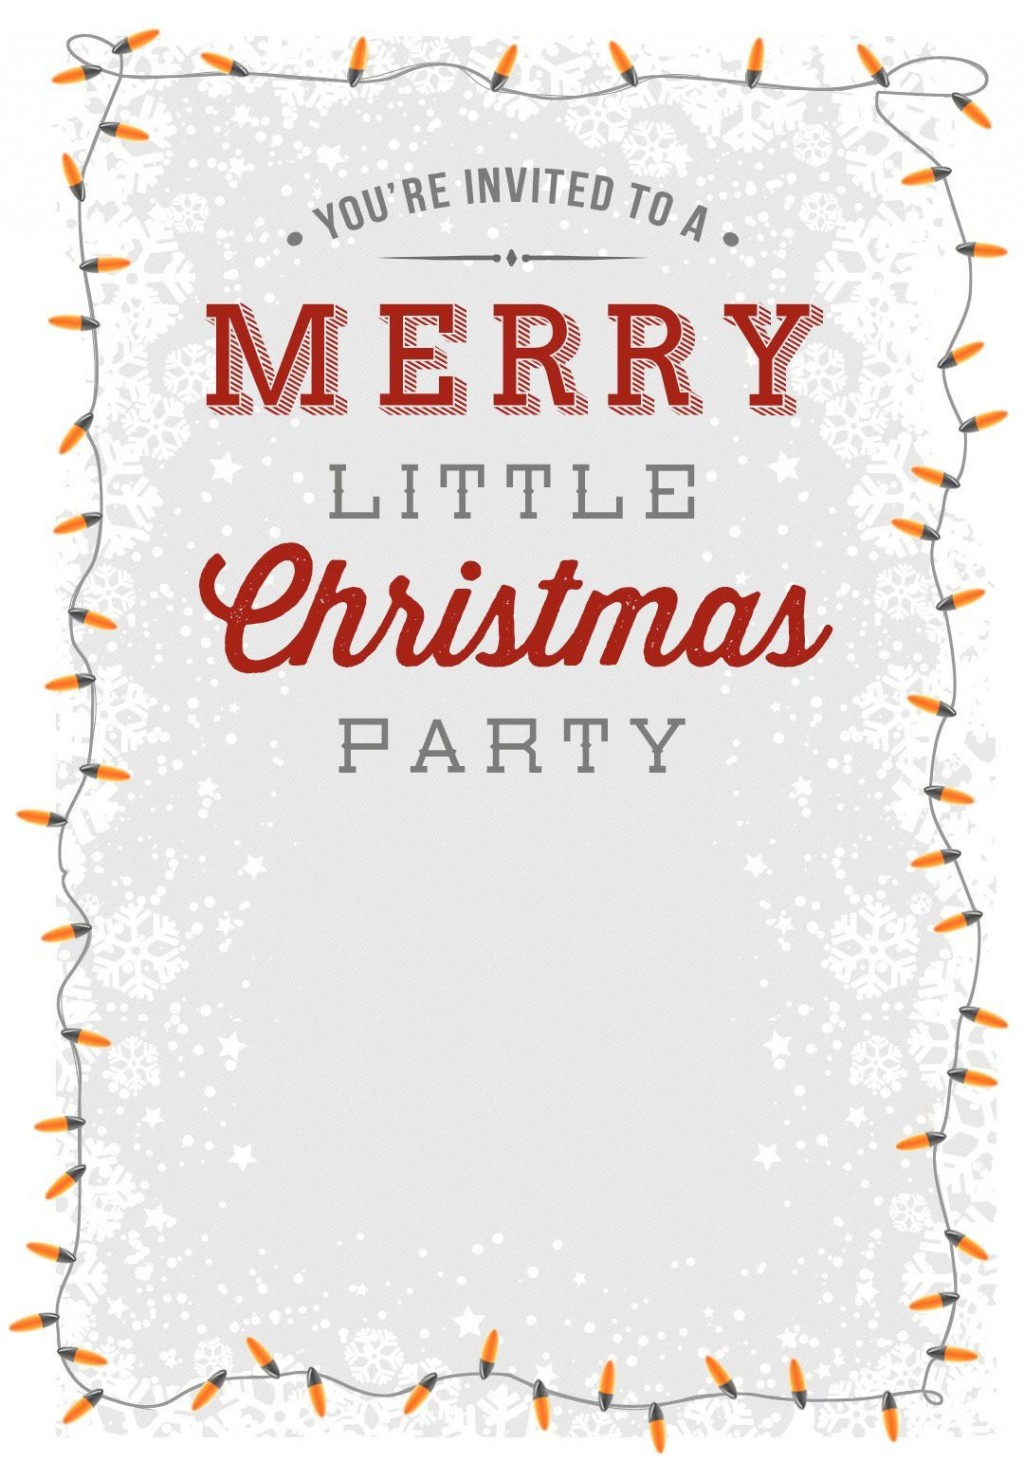 007 Magnificent Christma Party Invite Template Highest Clarity  Microsoft Word Free Download Holiday Invitation PowerpointLarge